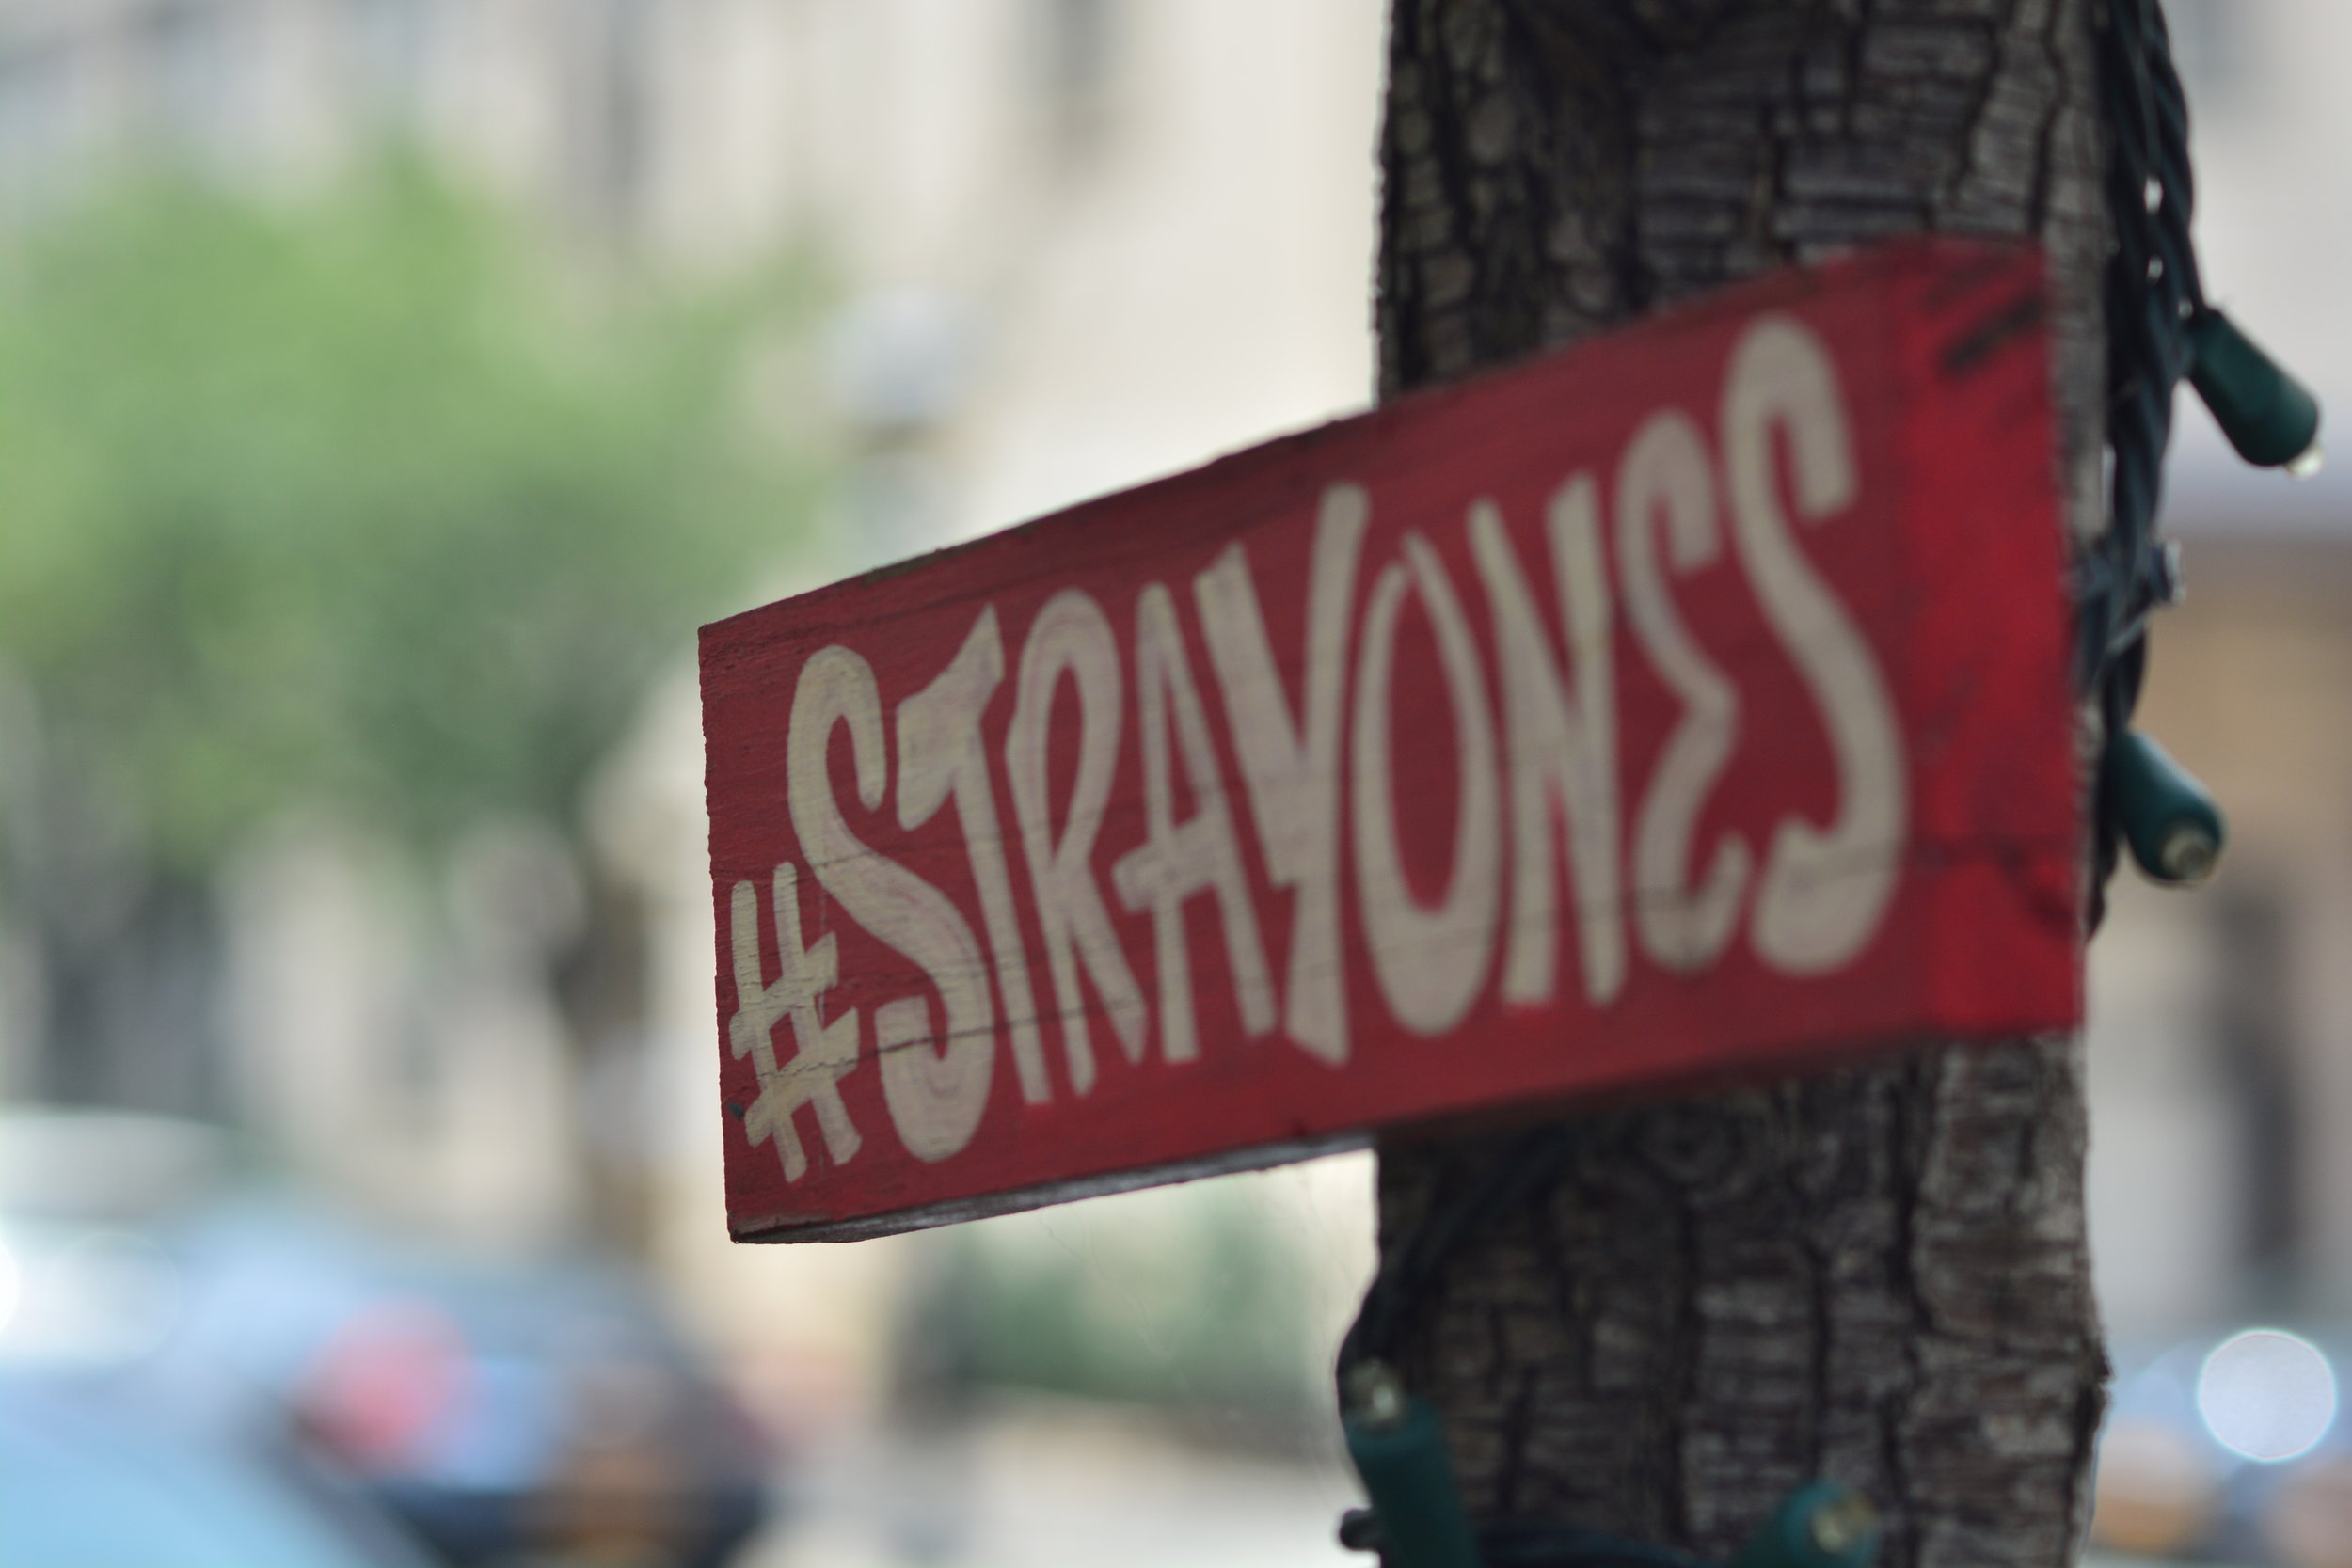 Try to Find More #StrayOnes